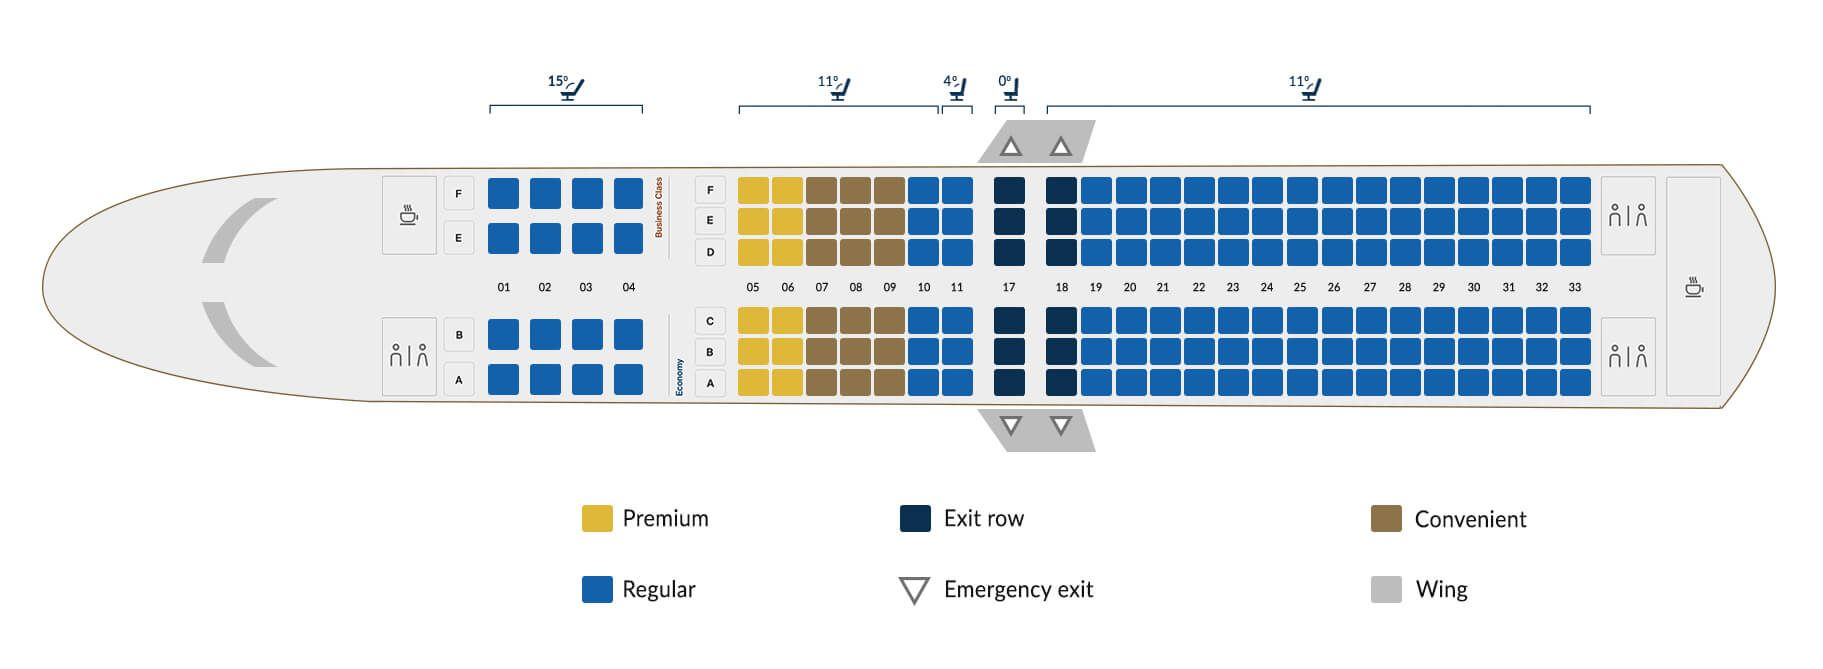 Copa Airlines Boeing 737 800 A Seating Plan Airlines Boeing Boeing 737